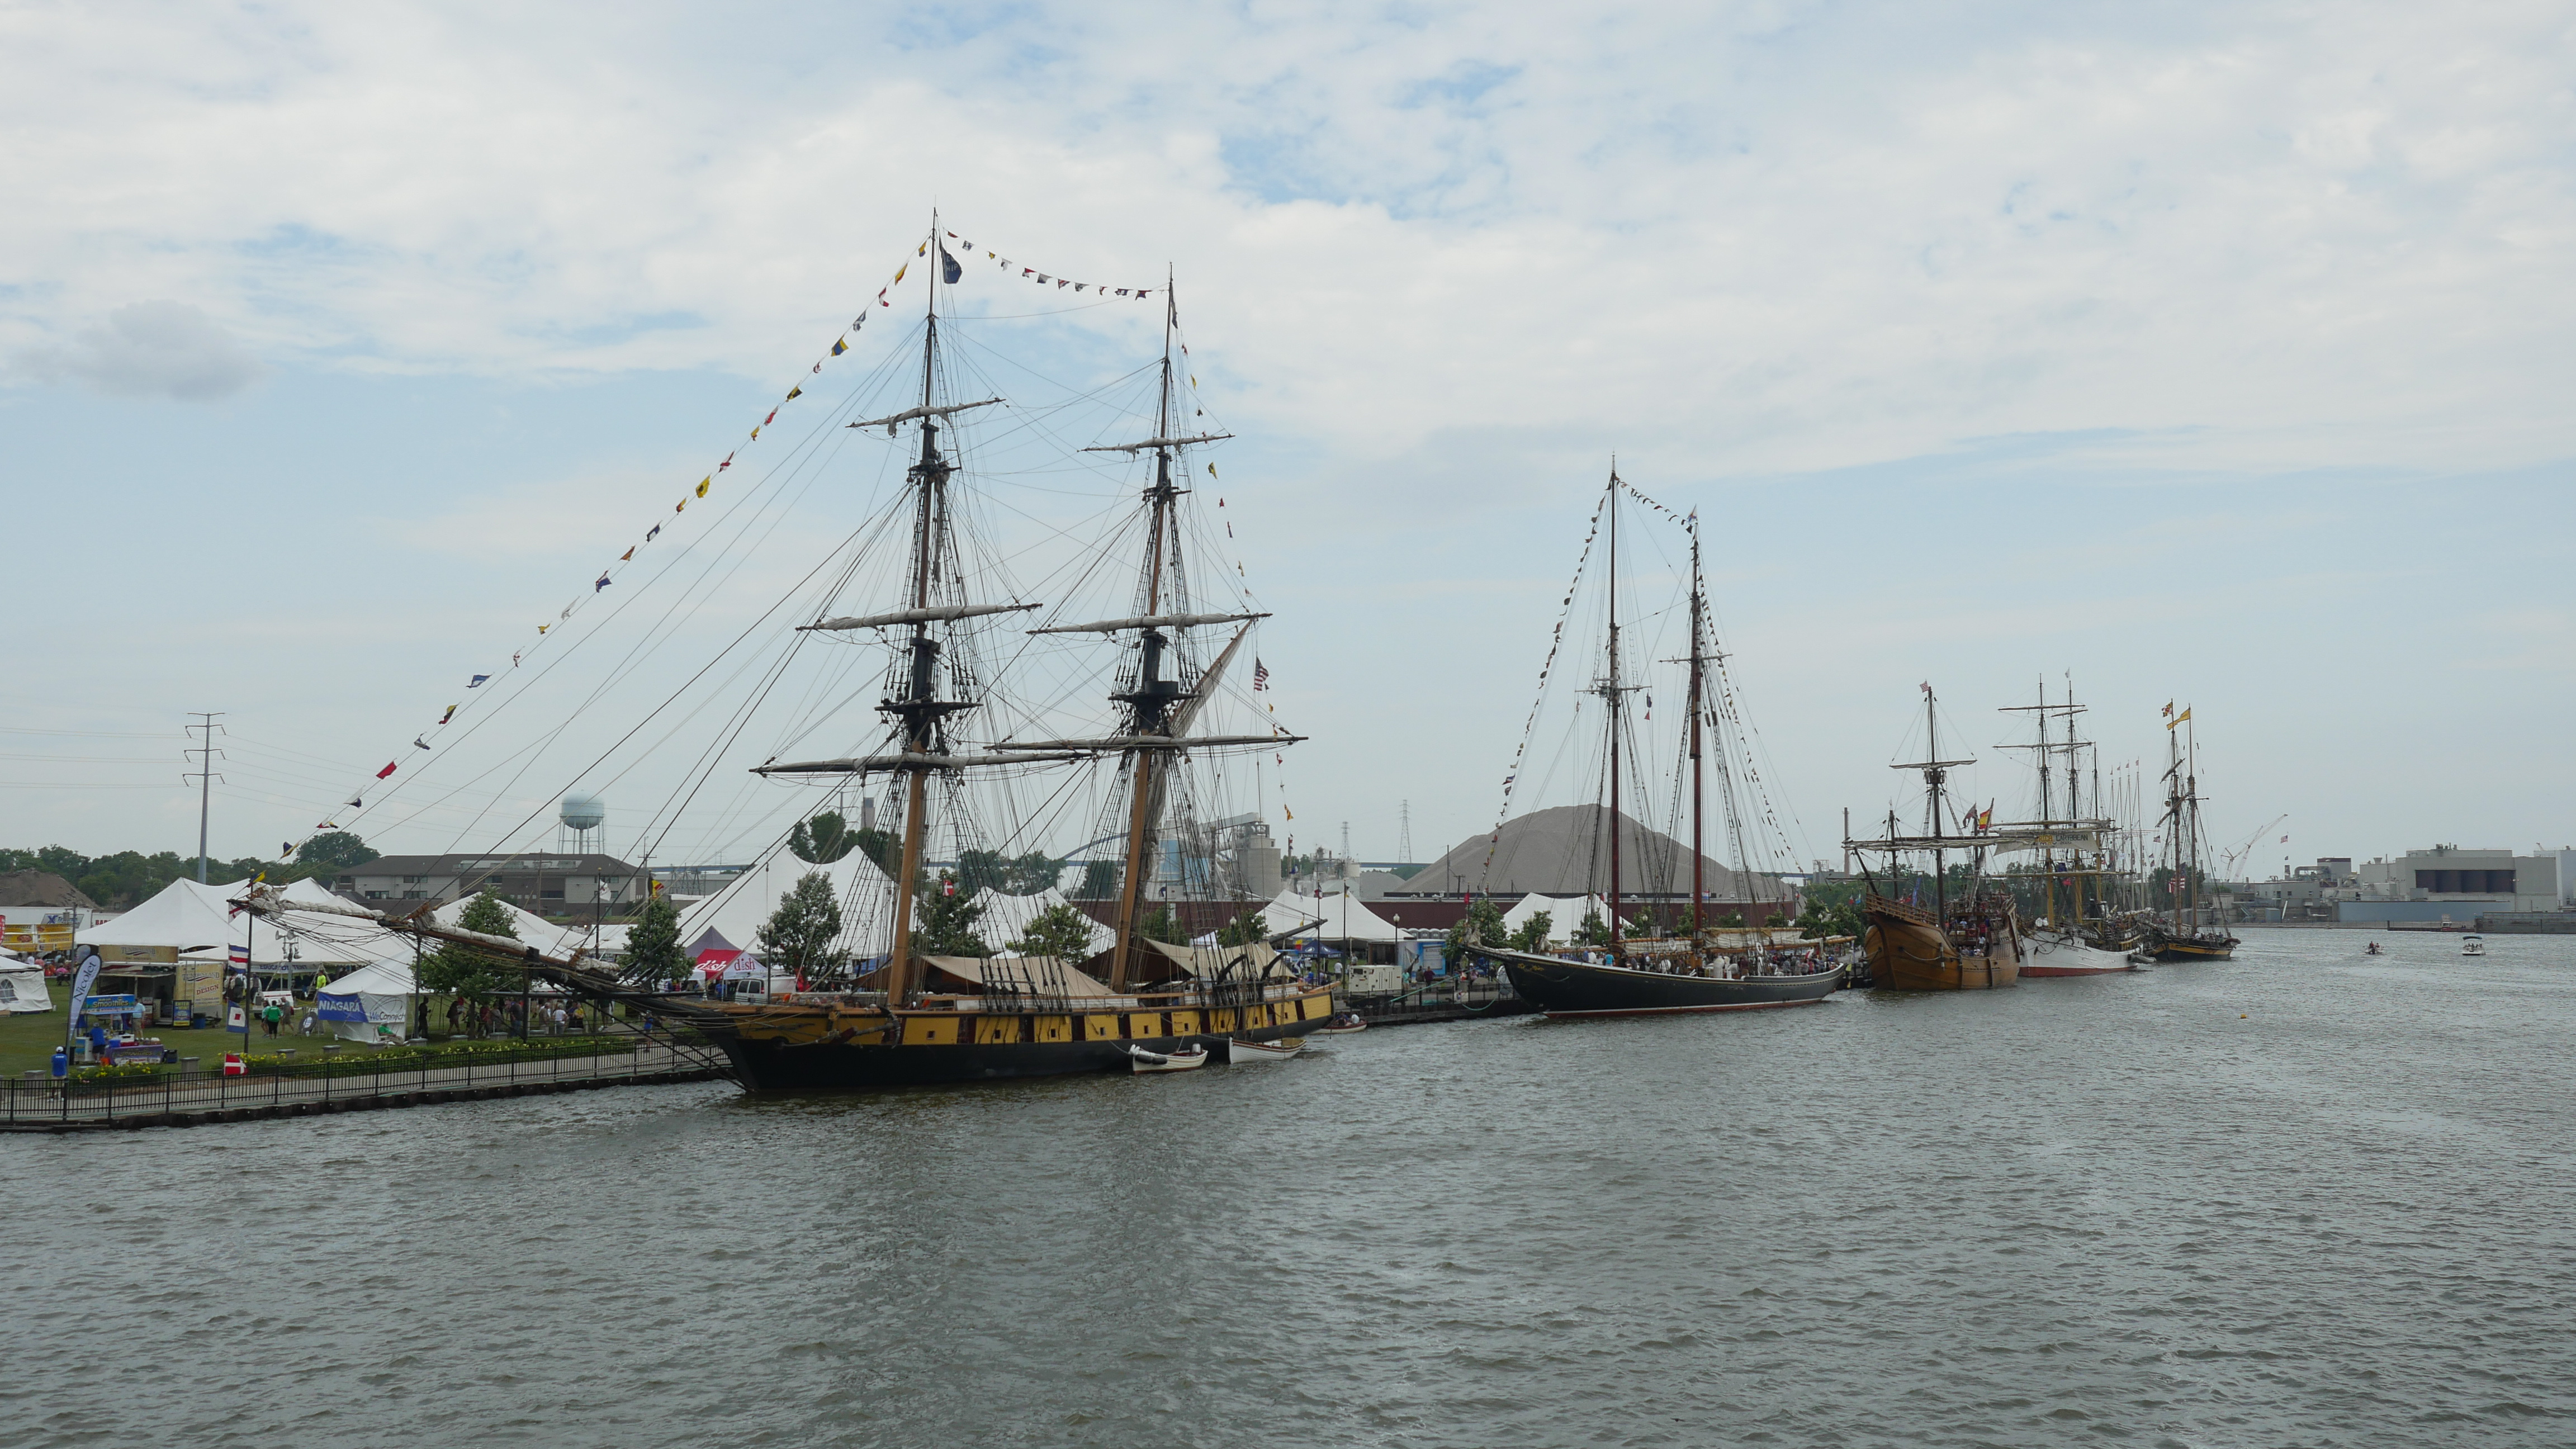 Tall Ships return to Green Bay, Friday, July 26, 2019 (WCWF/ Beni Petersen)